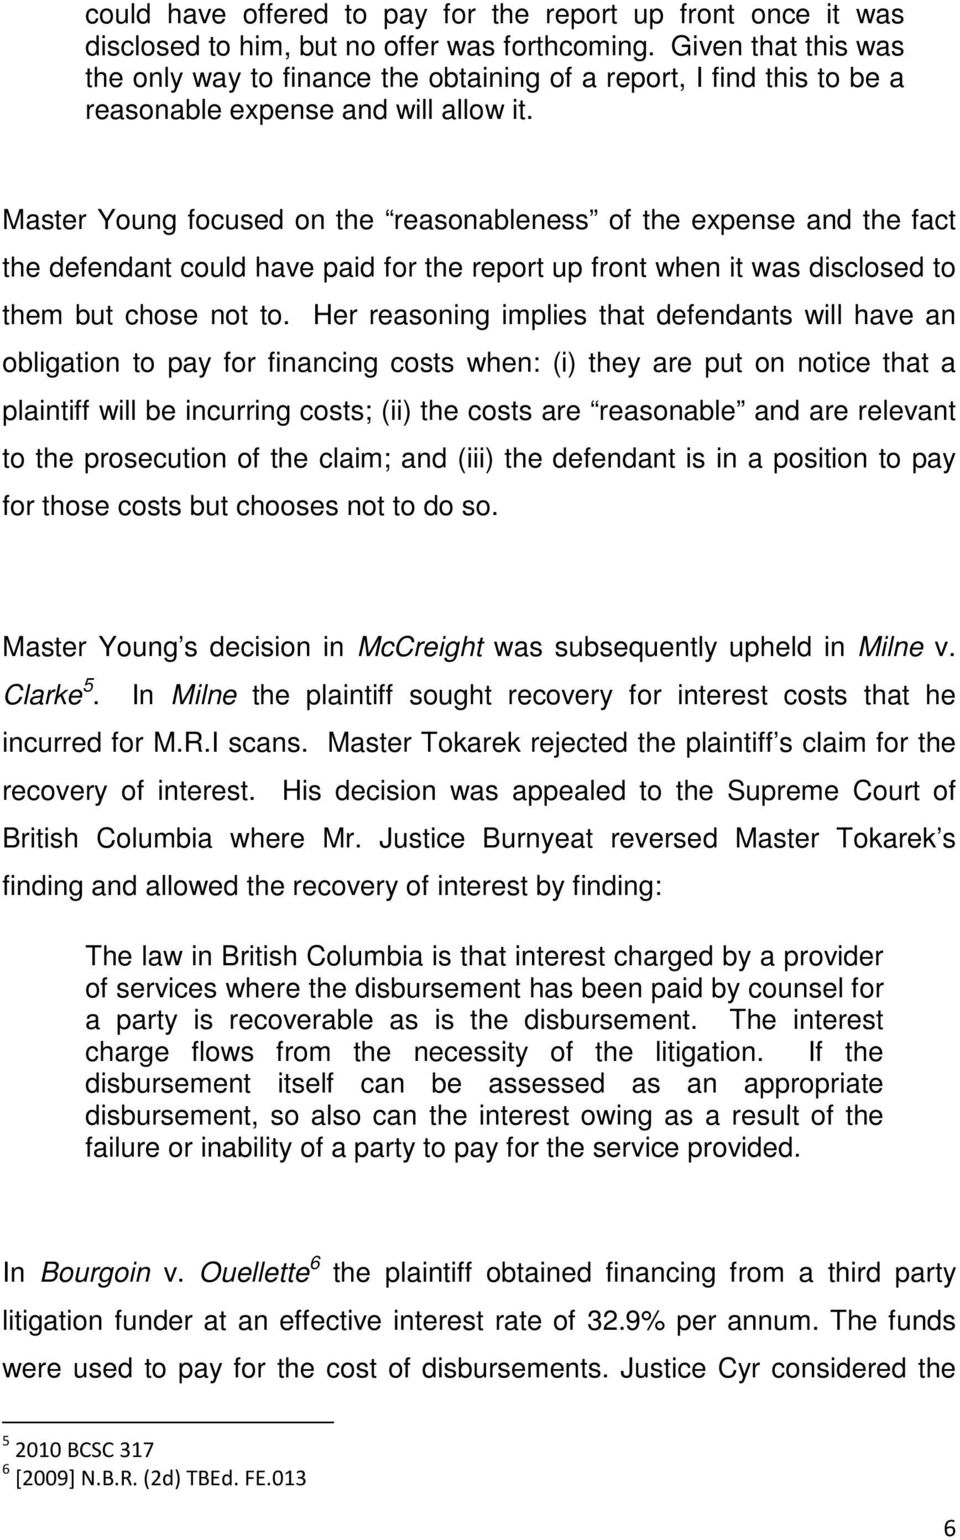 Master Young focused on the reasonableness of the expense and the fact the defendant could have paid for the report up front when it was disclosed to them but chose not to.